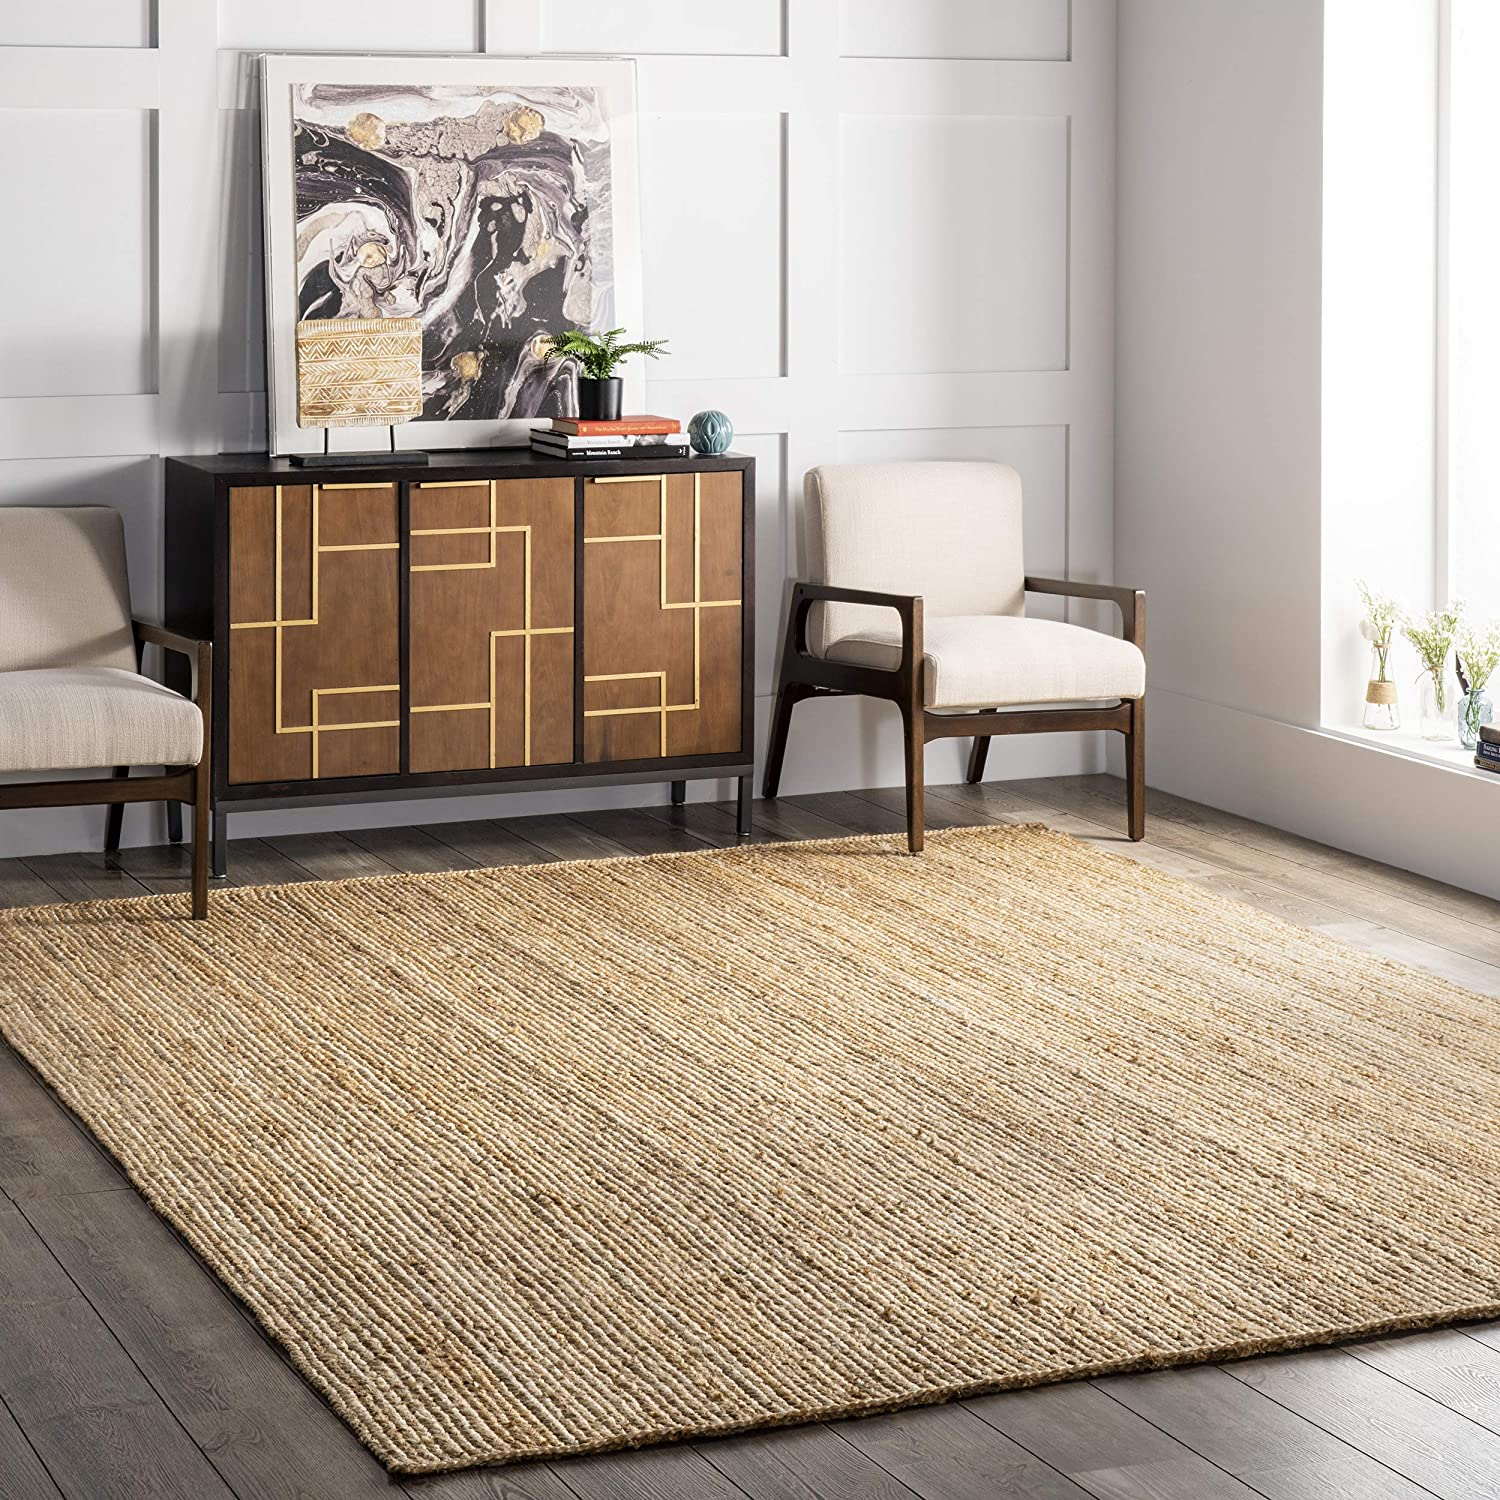 nuLOOM Rigo Hand Woven Jute Area Rug, 5' x 8', Natural from Amazon